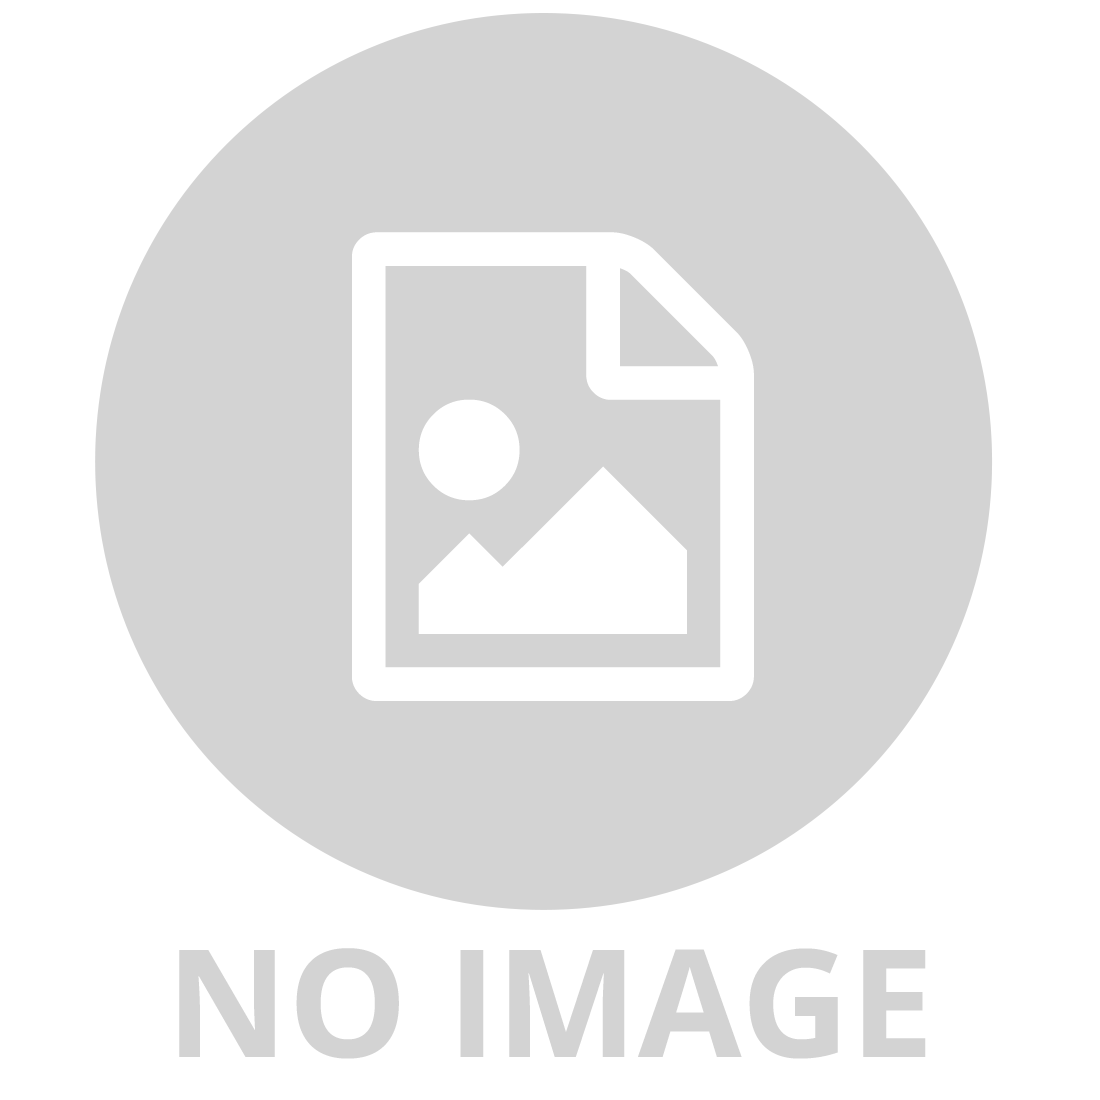 1ST LEARNING WOODEN PEG PUZZLES